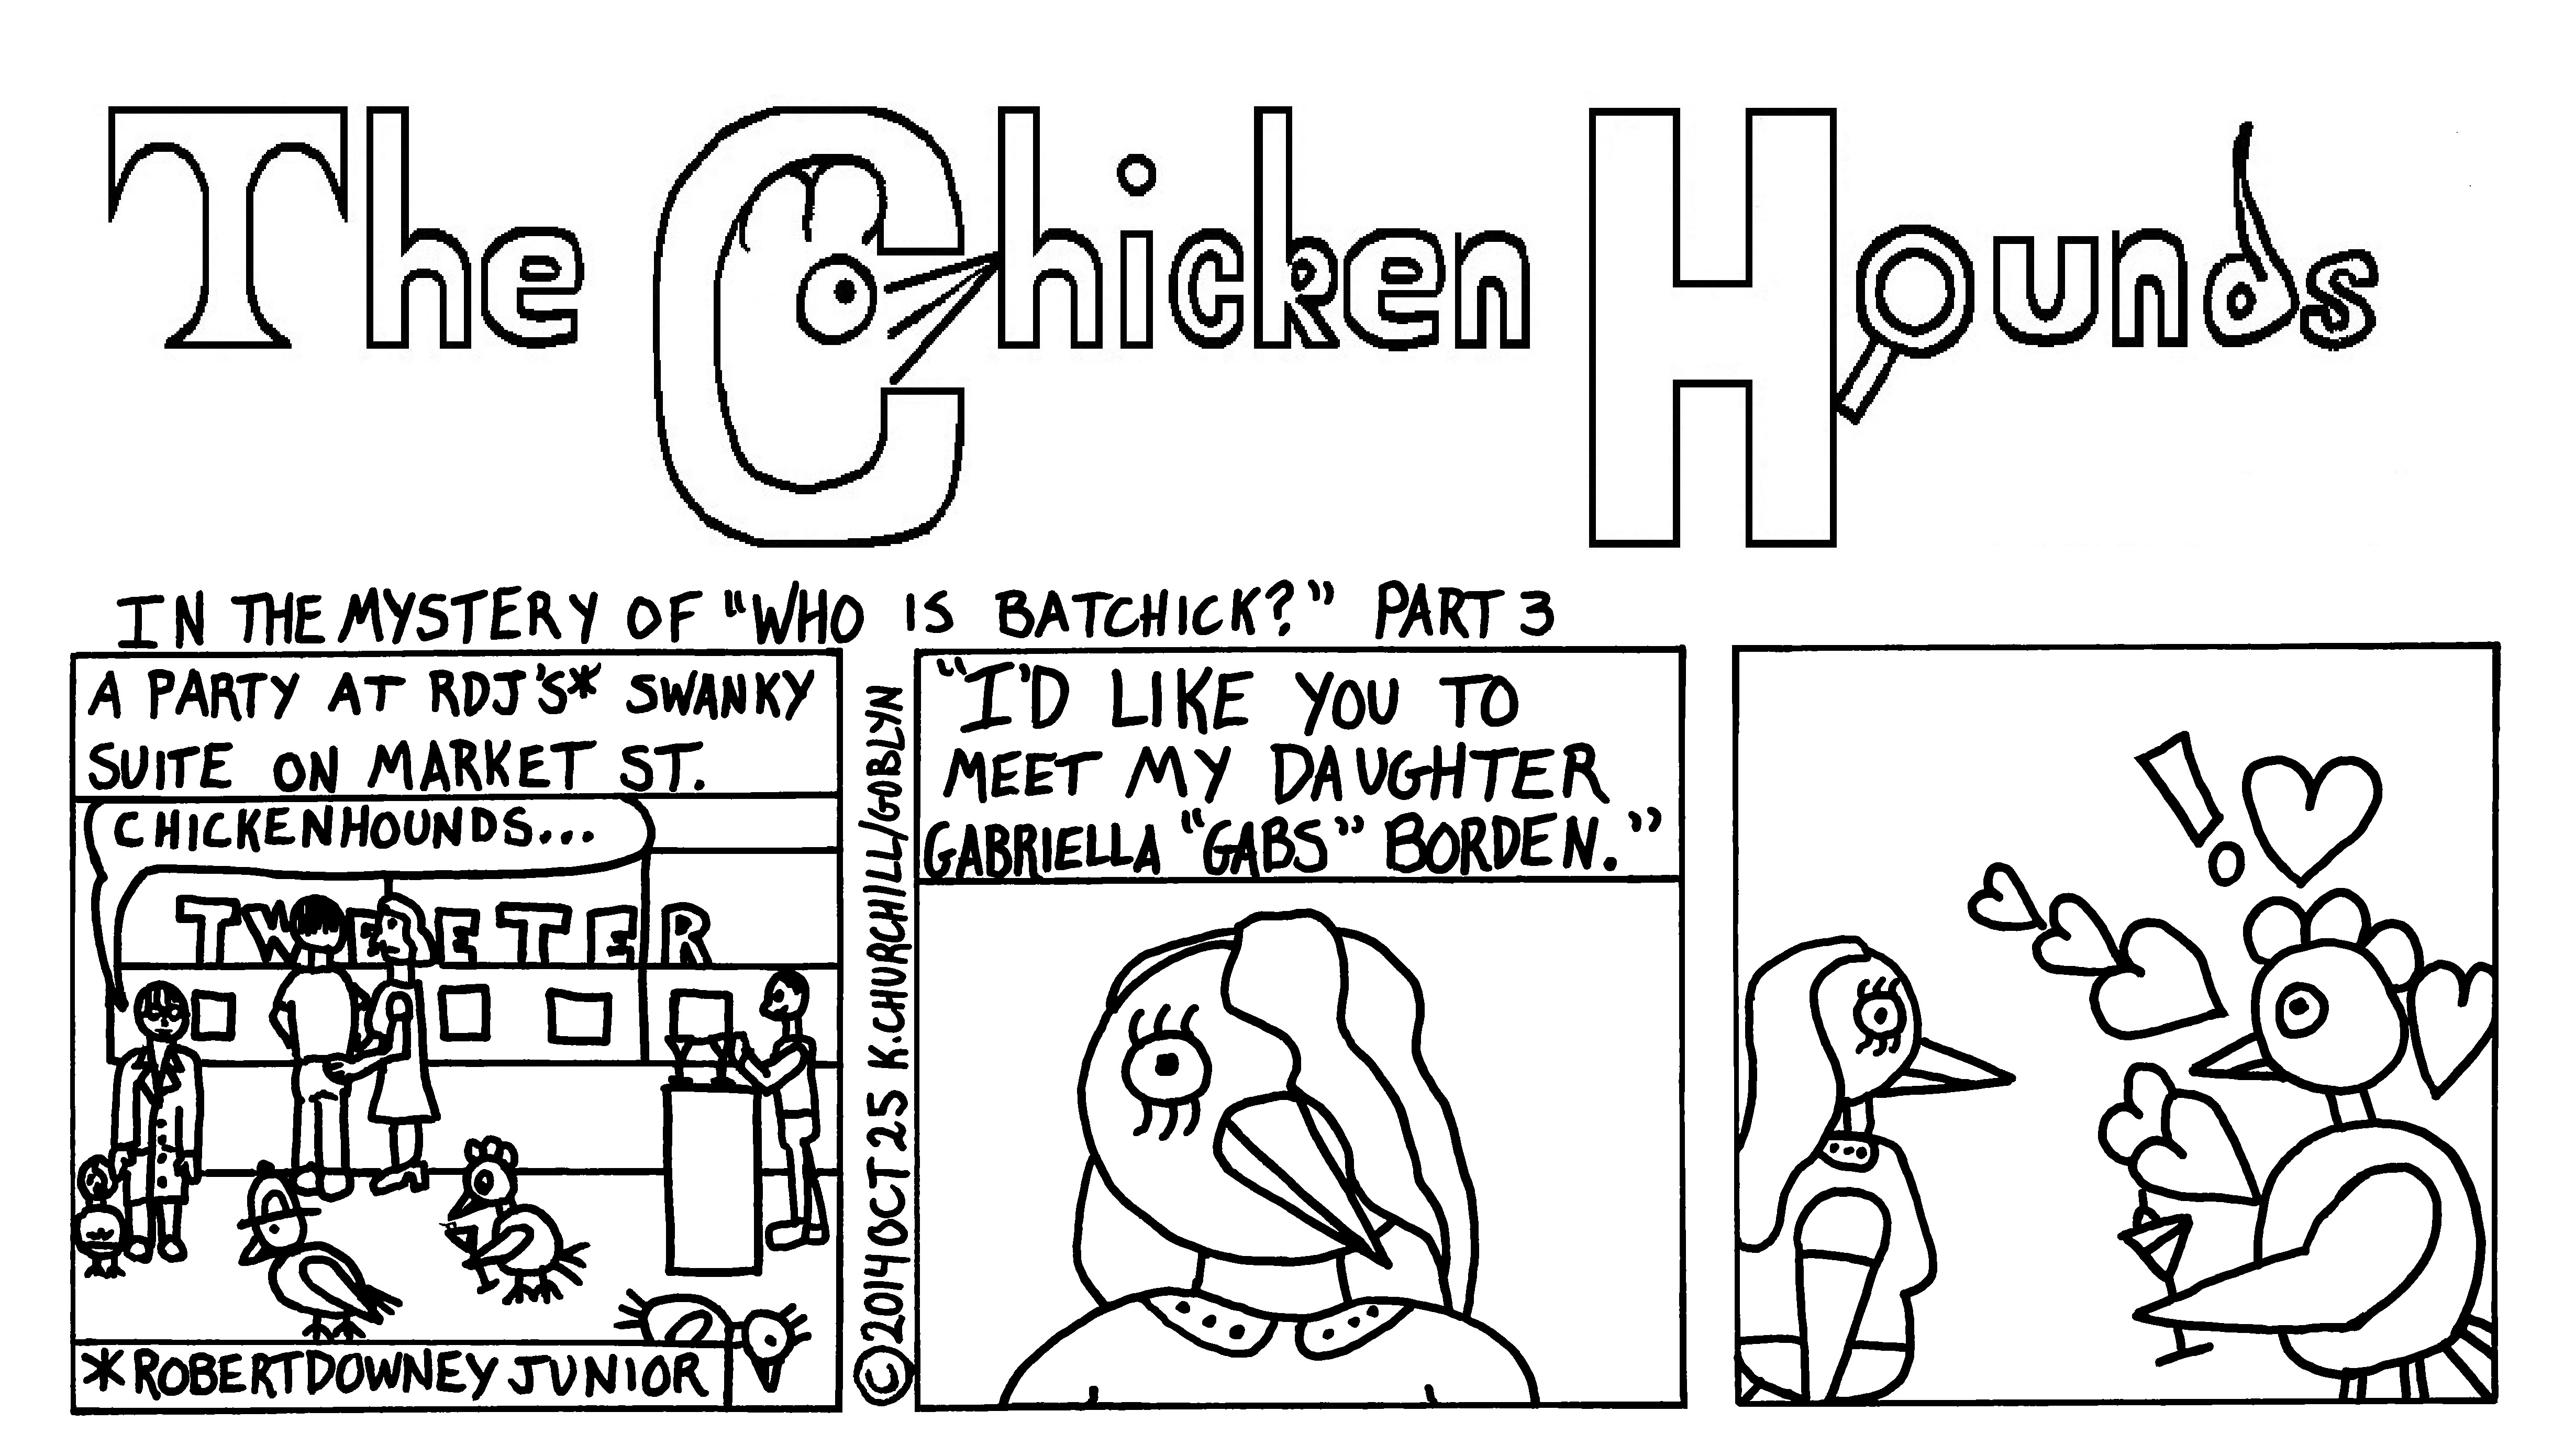 "The Chicken Hounds in the Mystery of ""Who is Batchick?"" Part 3"